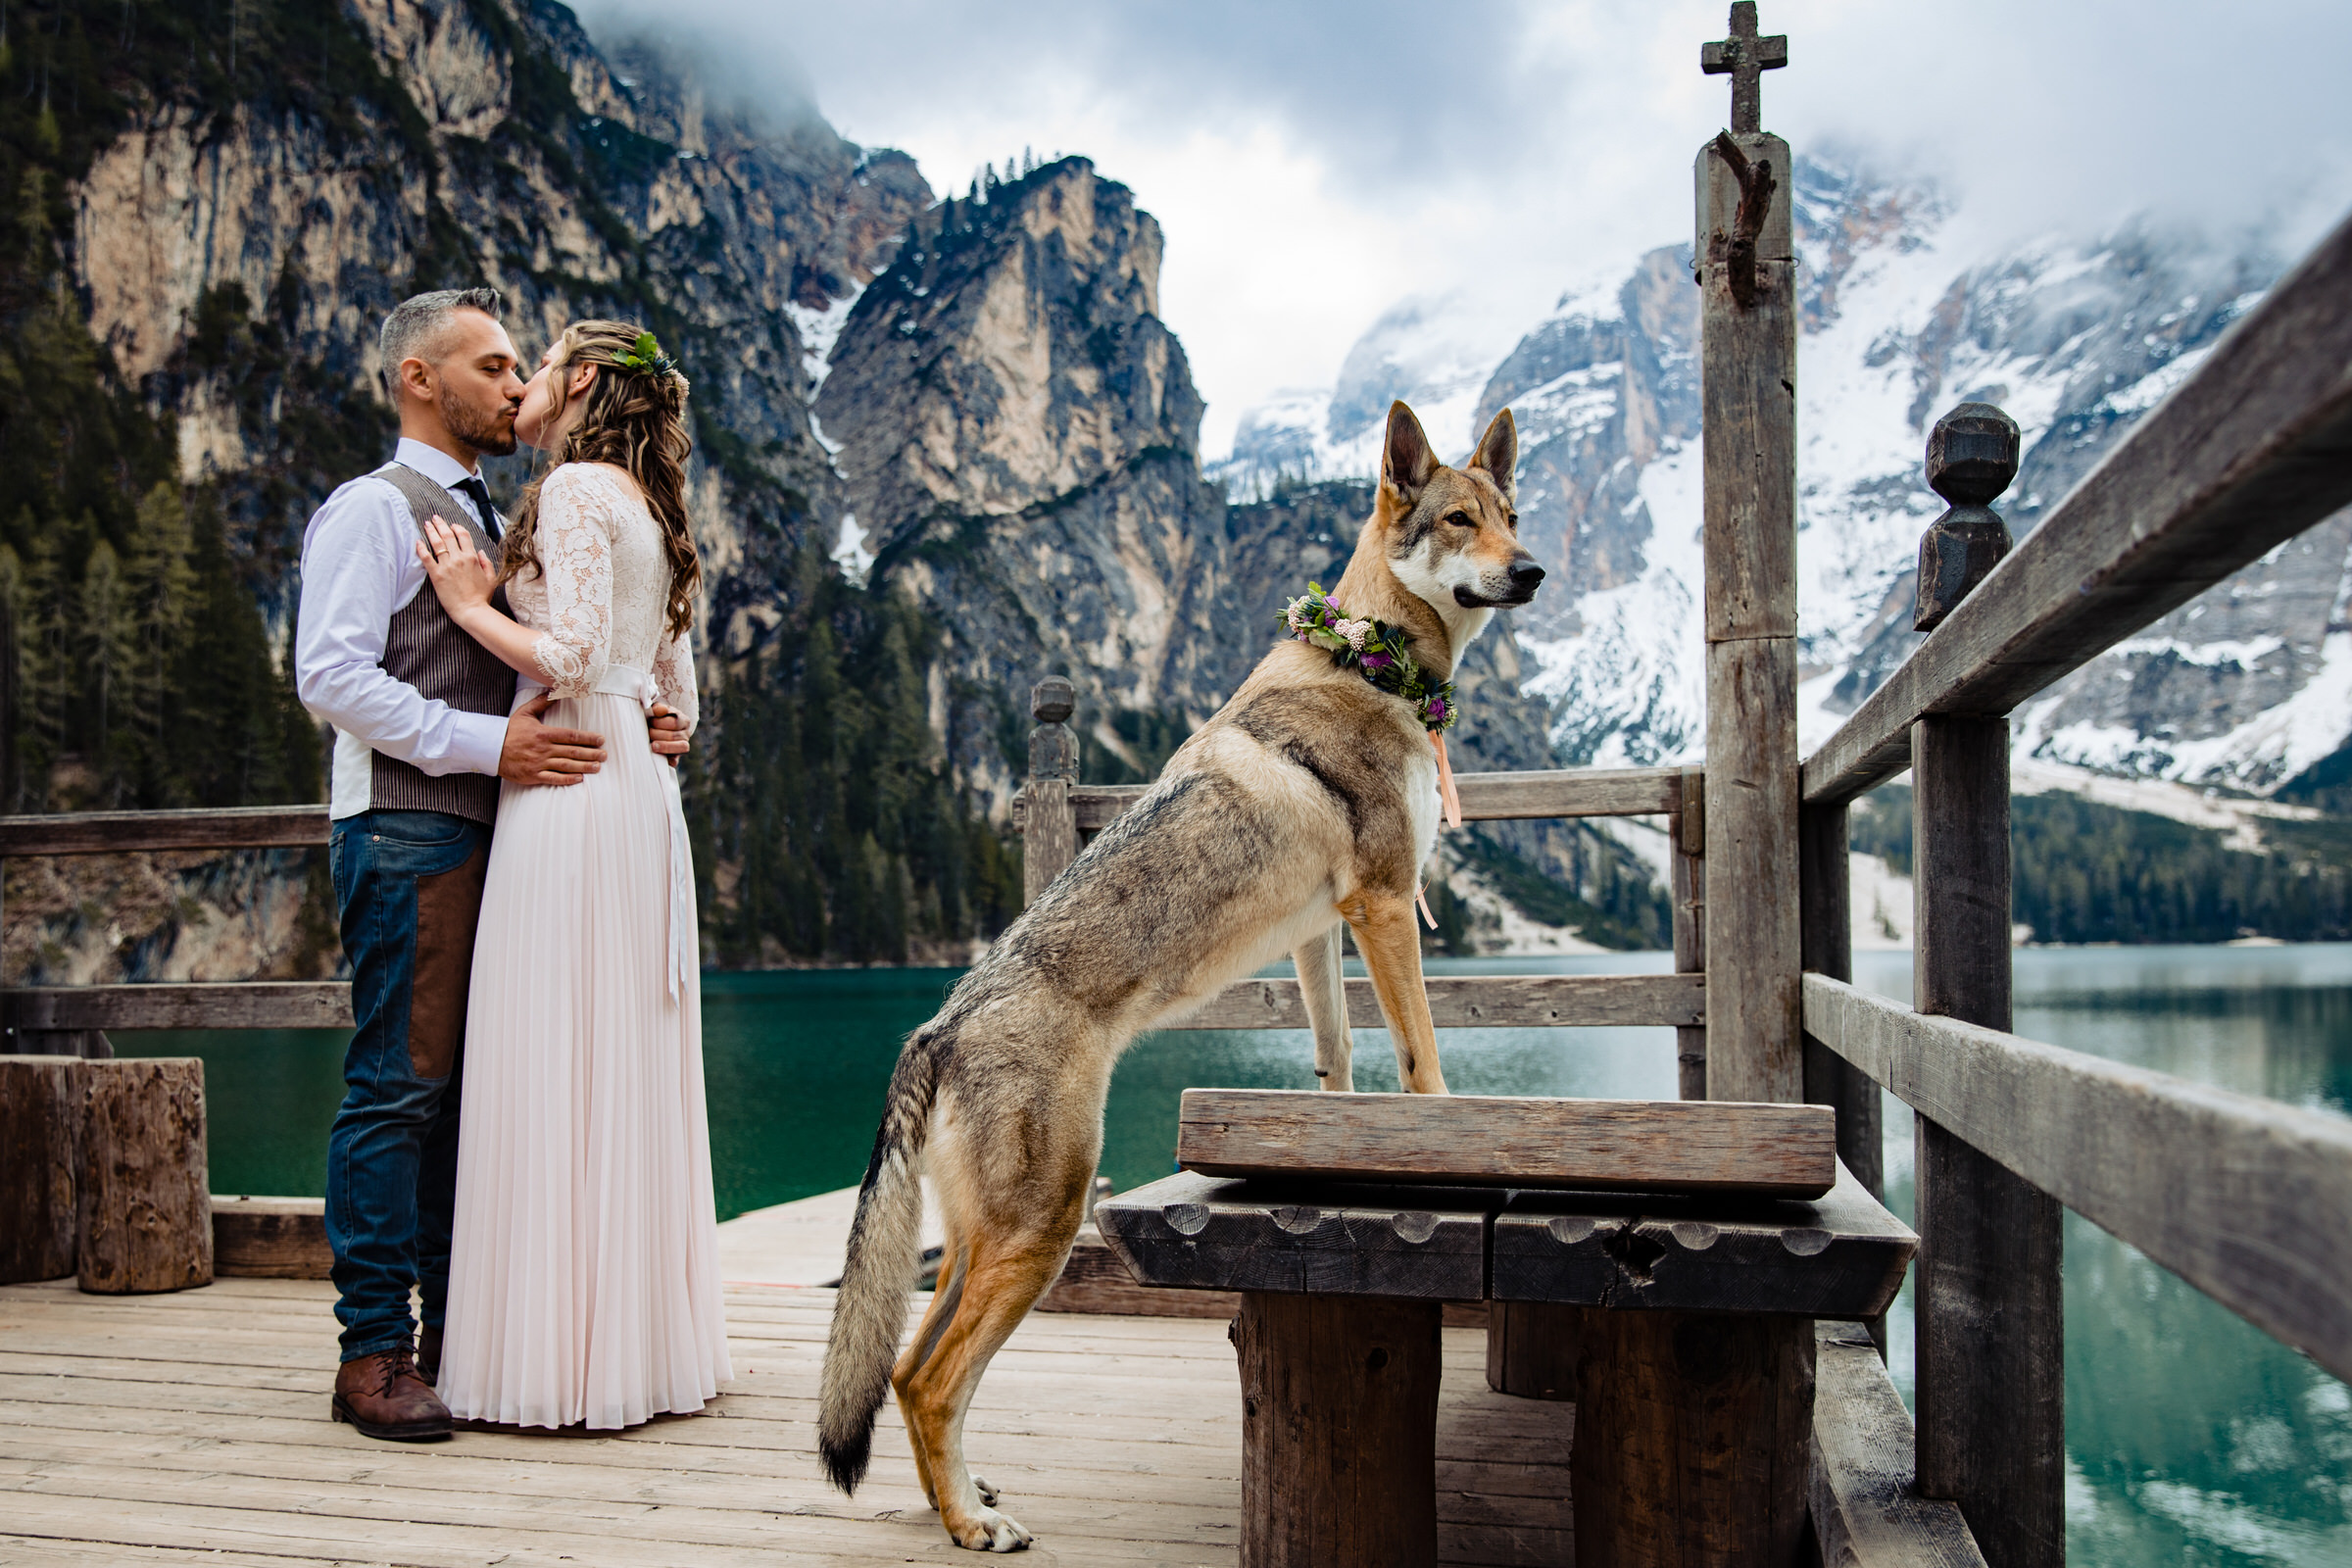 dog-show-luca-marta-gallizio-worlds-best-wedding-photos-dog-and-mountains.JPG